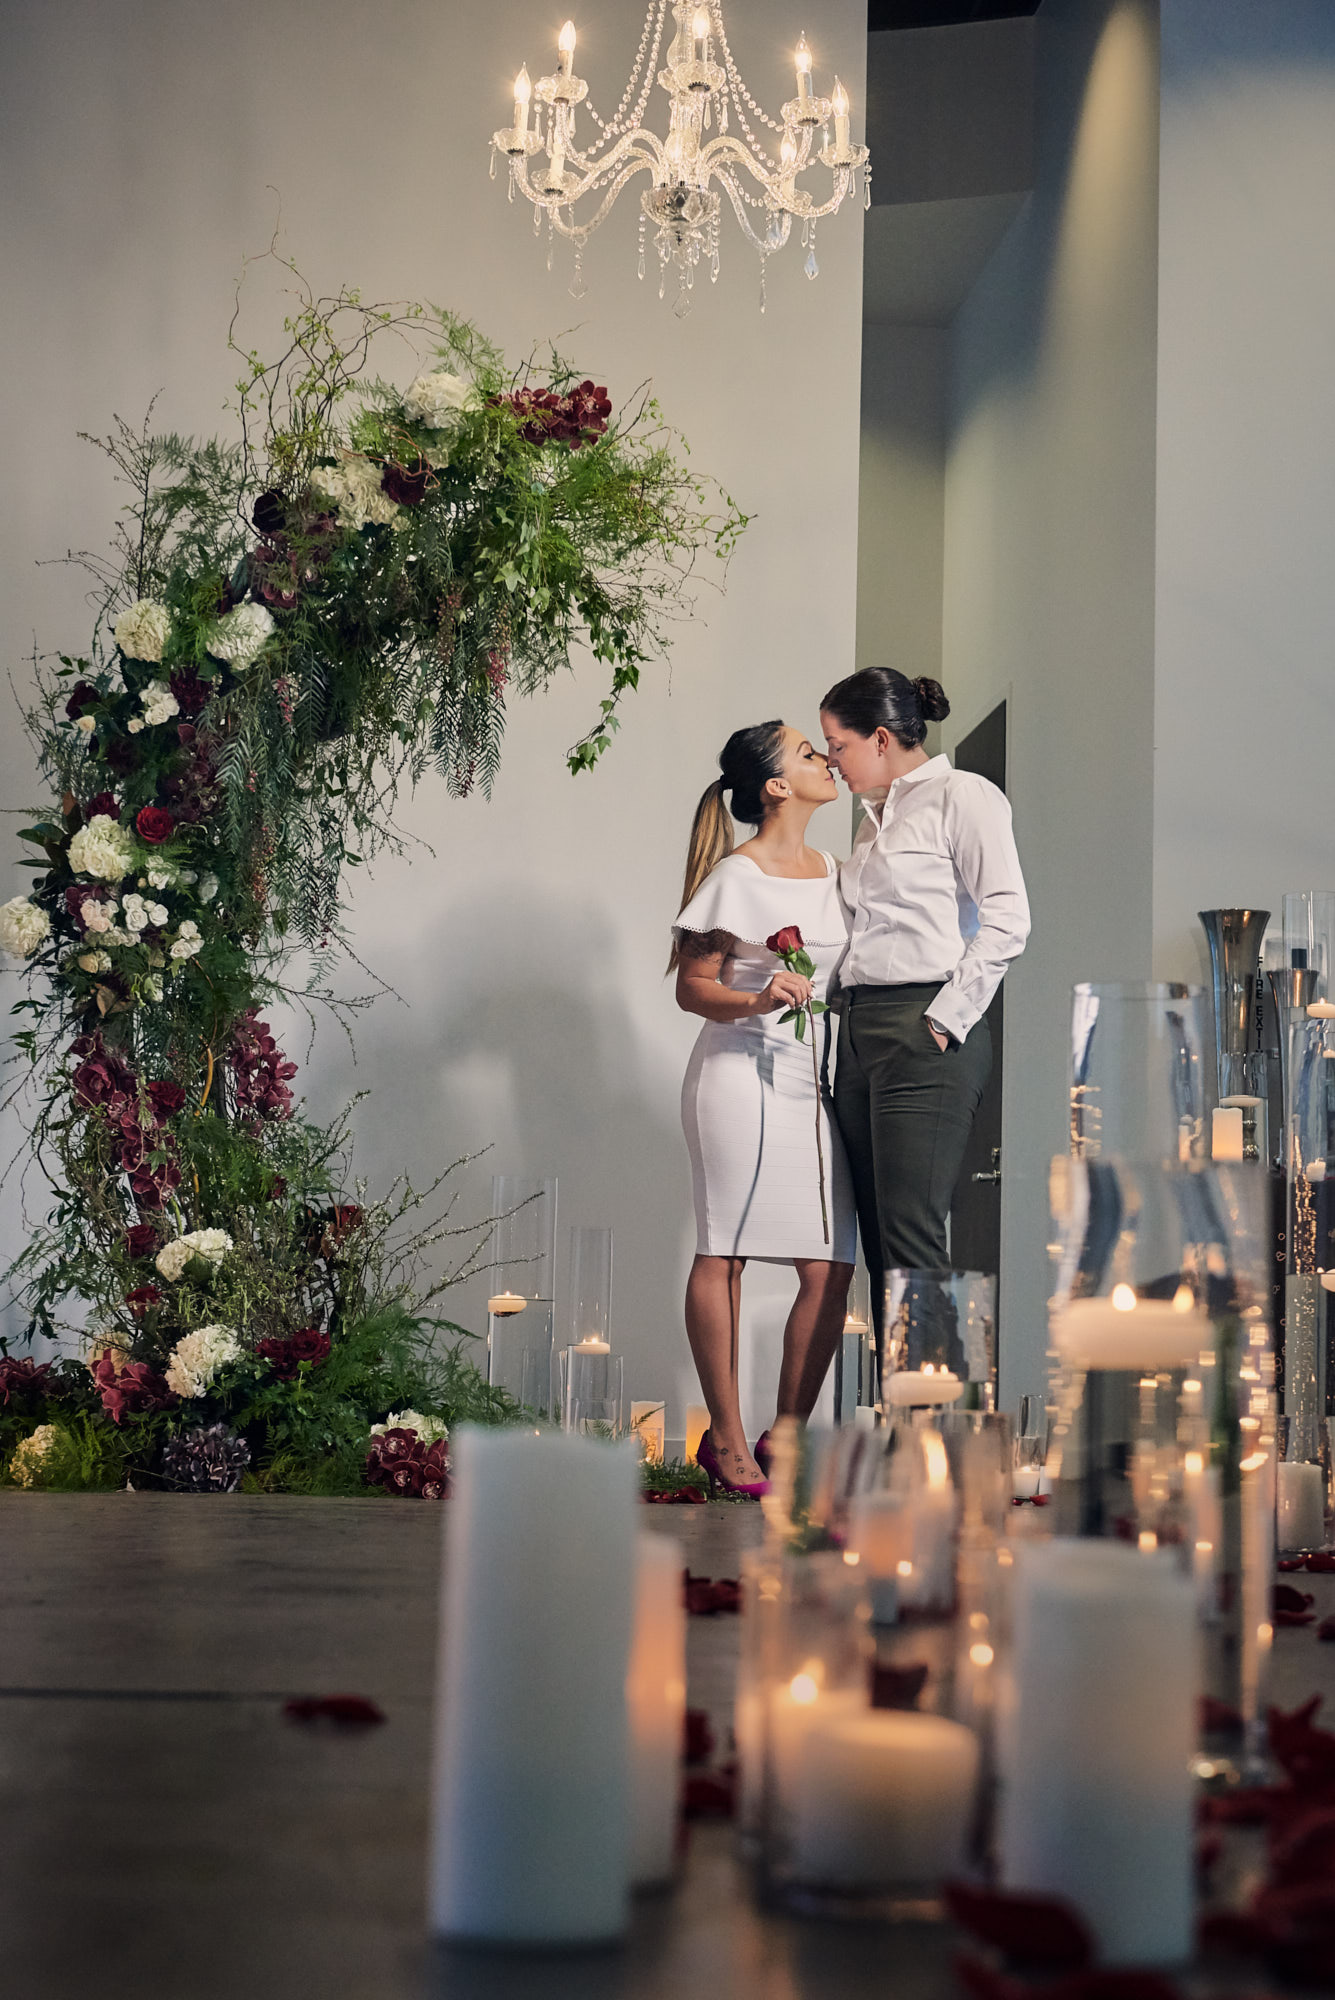 Two Brides Kissing.   Las Vegas Wedding Planner Andrea Eppolito designed the surprise engagement at the Mandarin Oriental for two brides to be.  Decor and lighting by Flora Couture and LED Unplugged, with photos by Fabio and Adri.